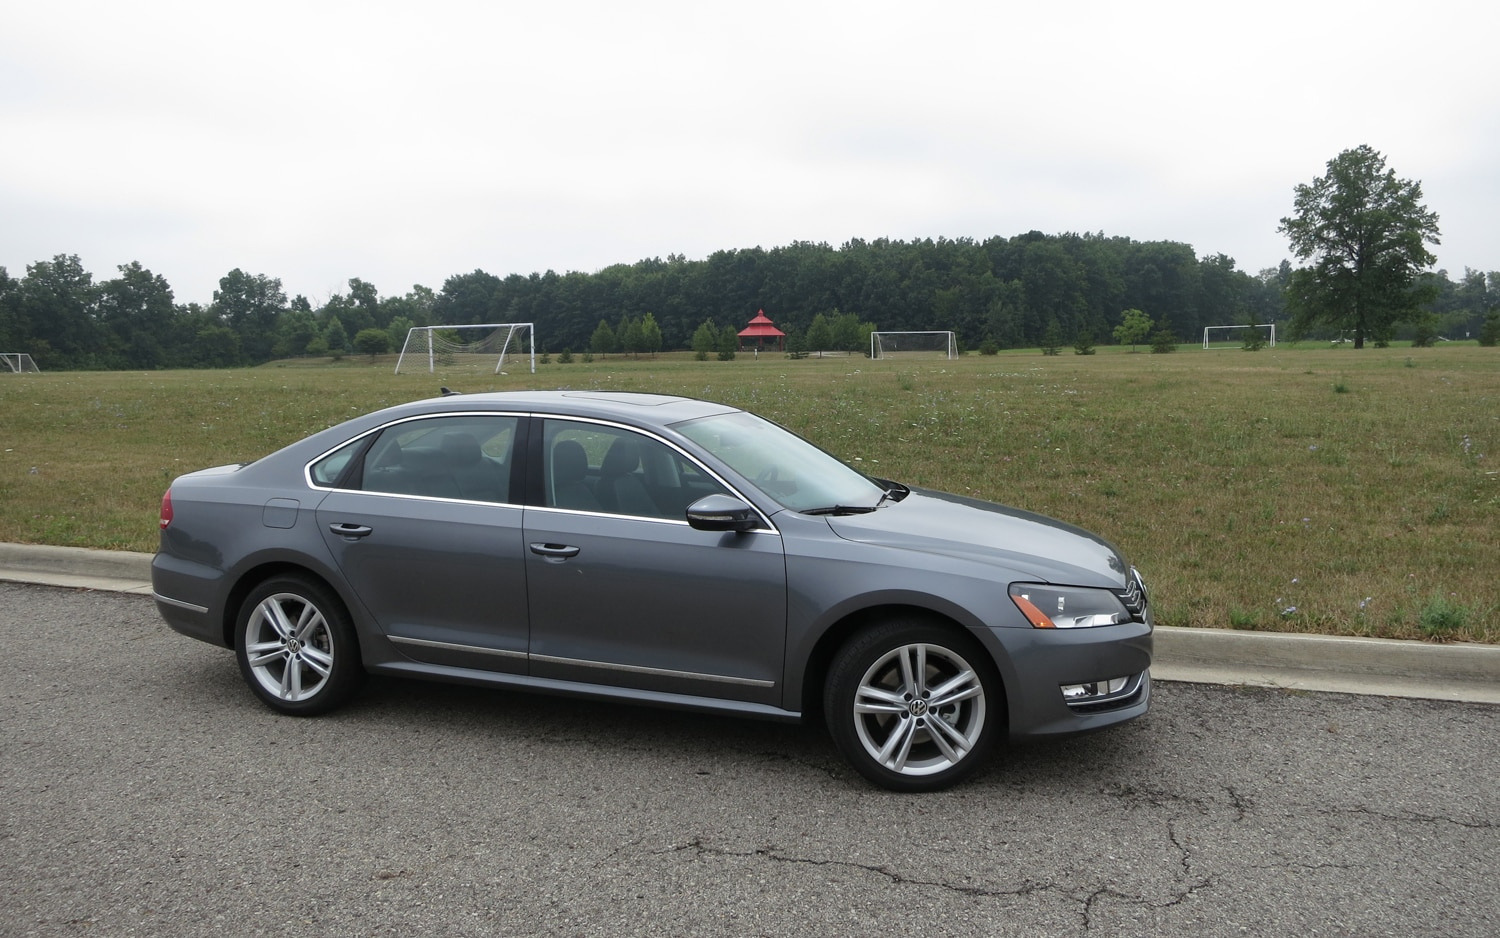 2012 Volkswagen Passat TDI Front Right Side View1